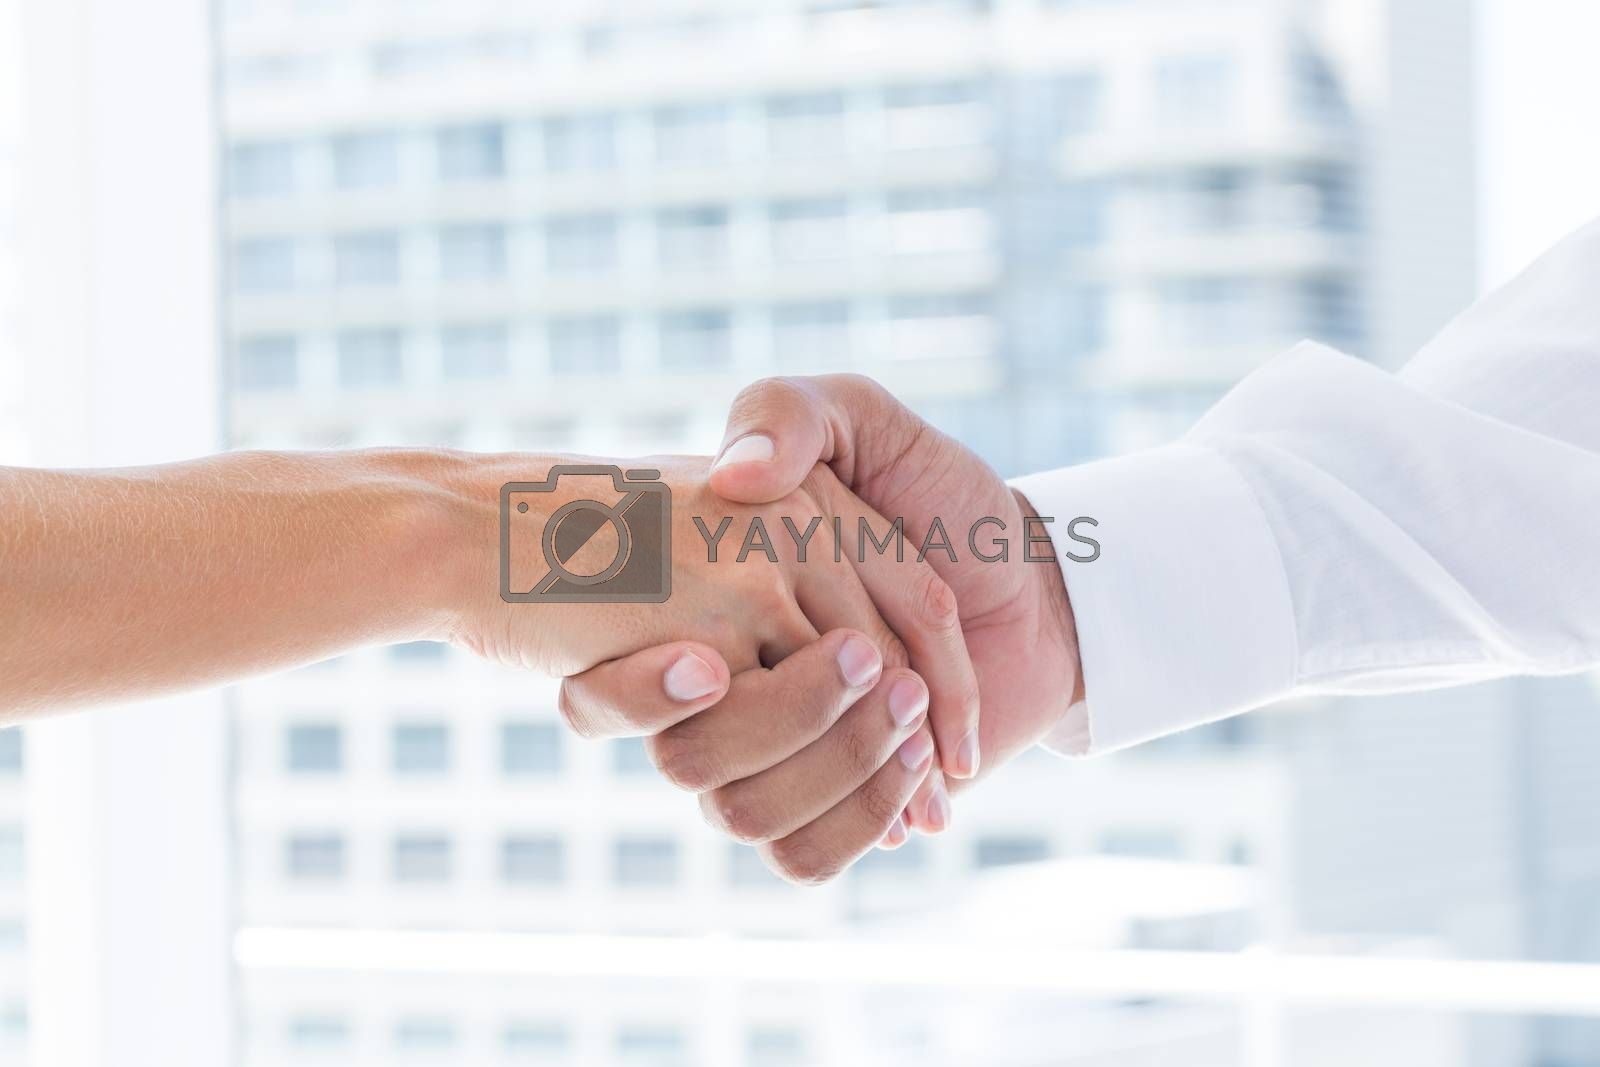 Royalty free image of Close up view of two business people shaking hands by Wavebreakmedia